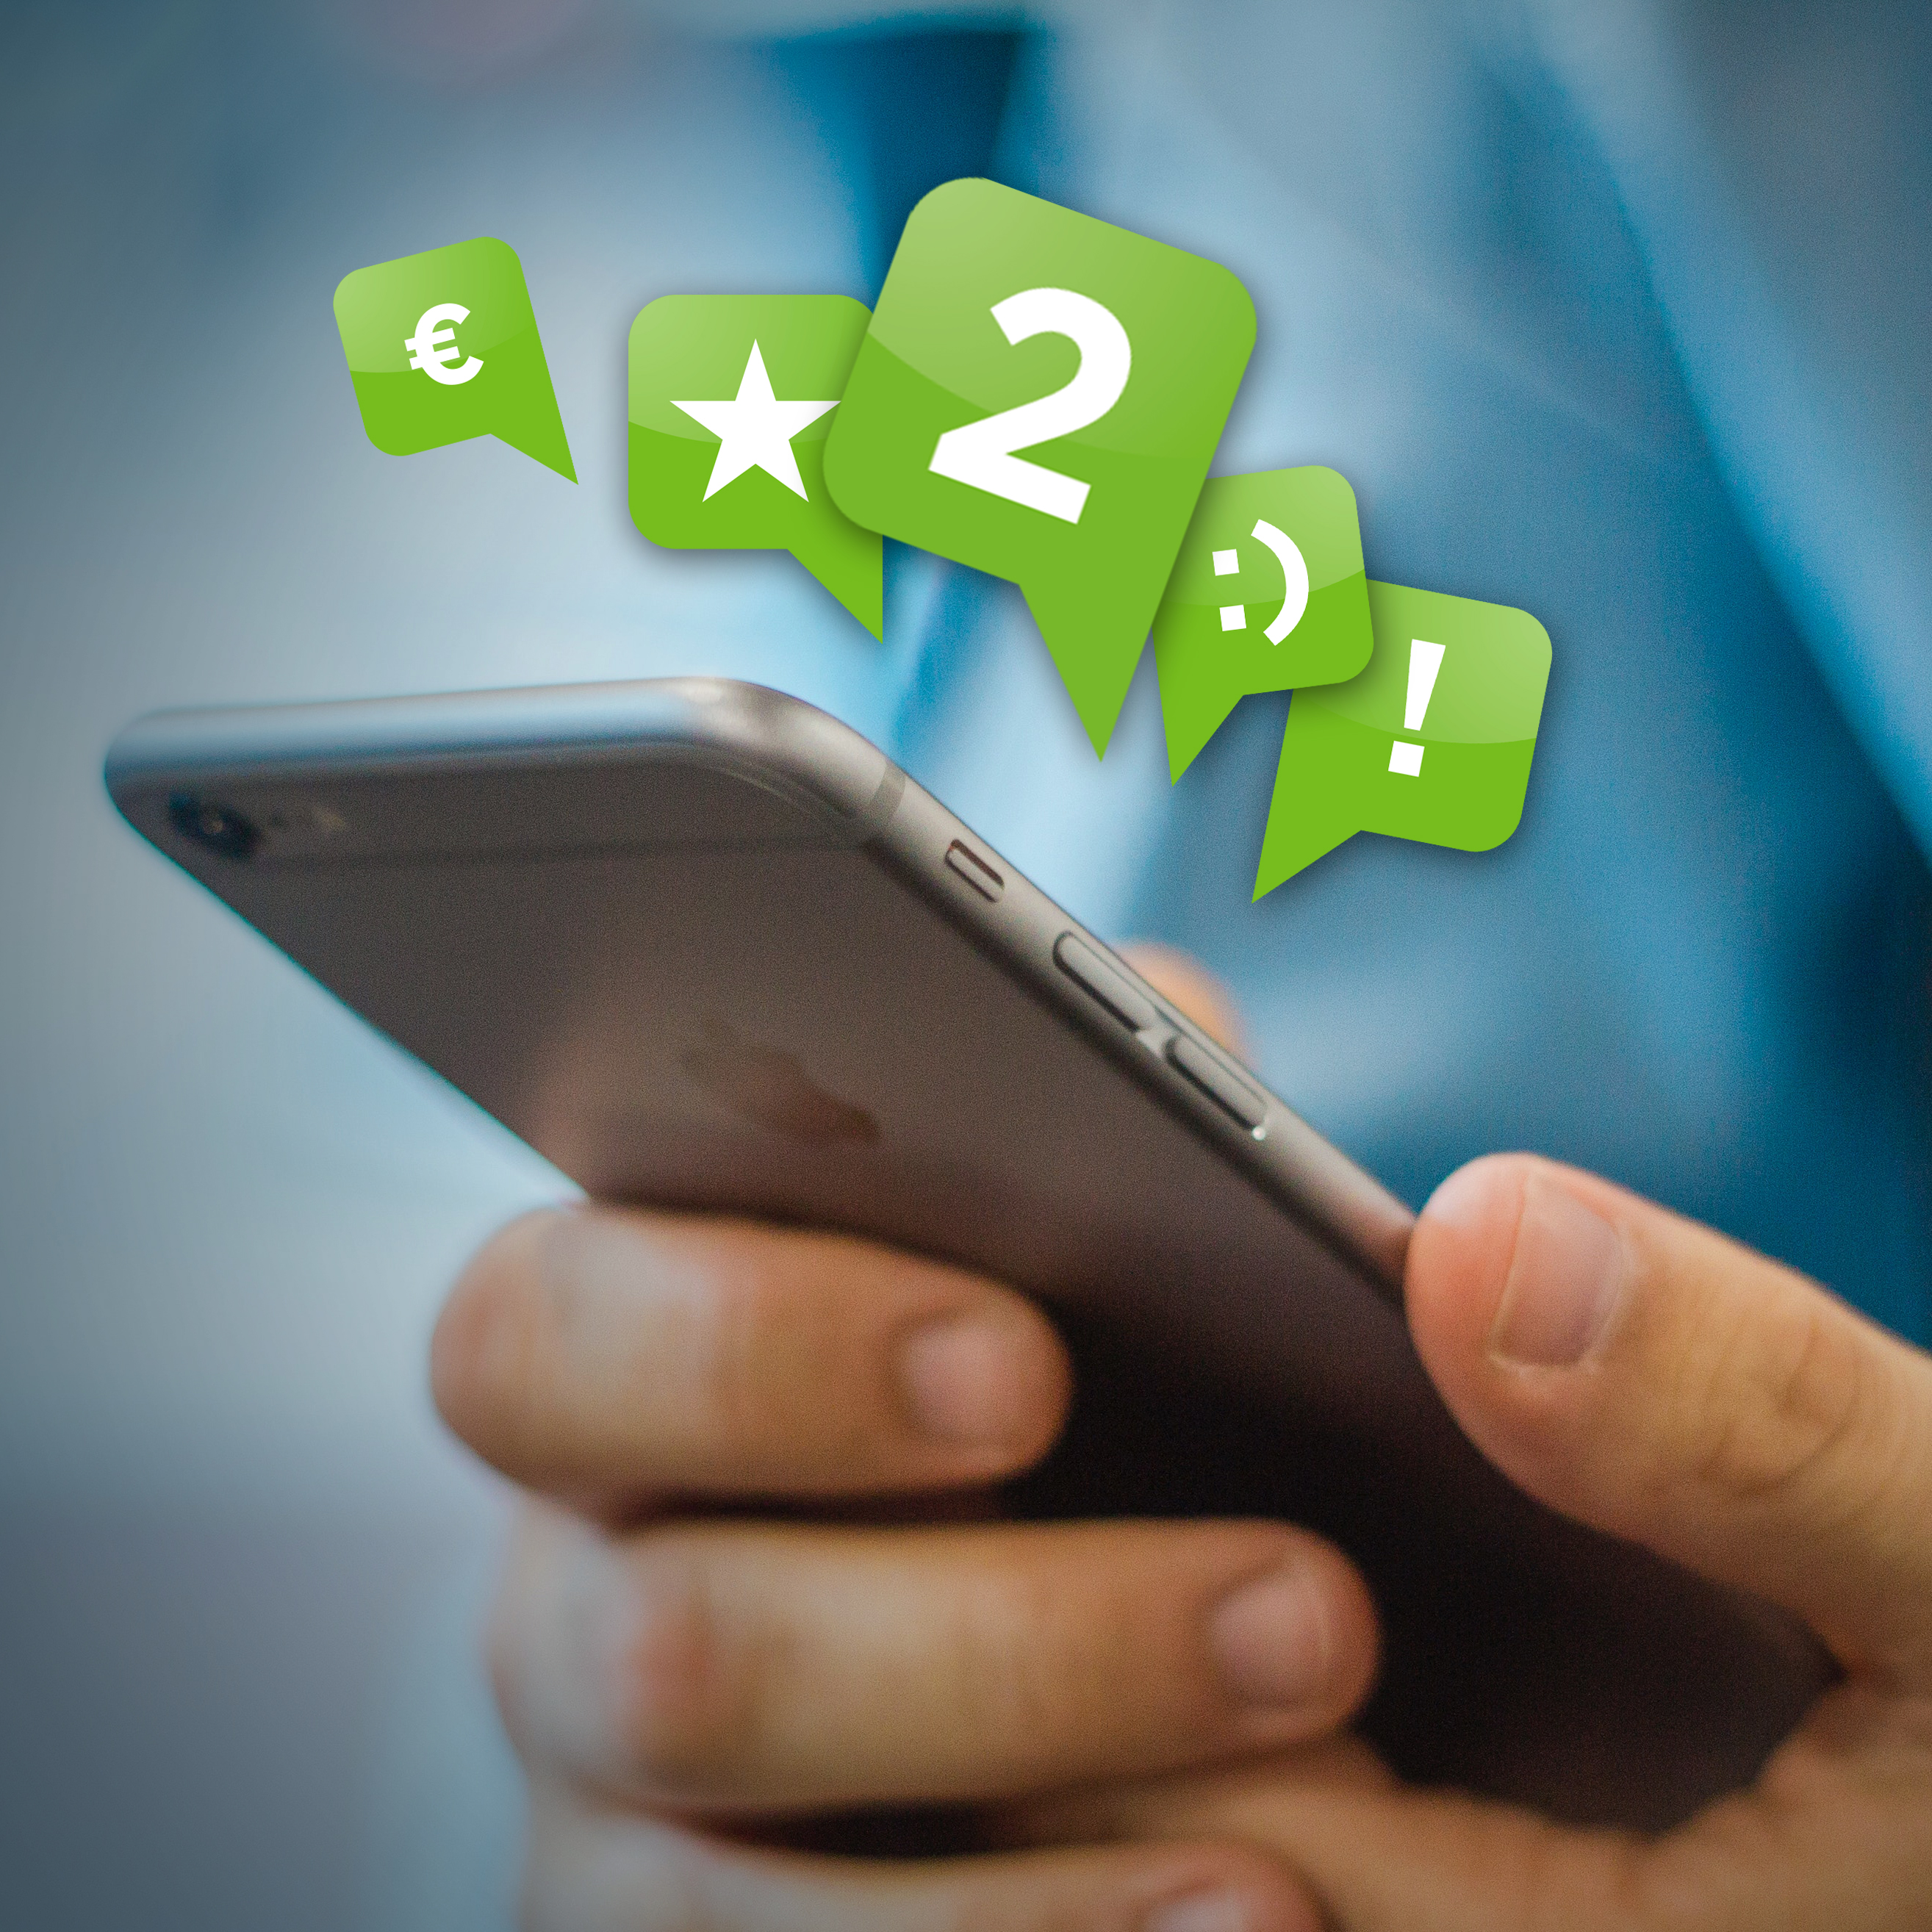 be2be sms marketing smartphone